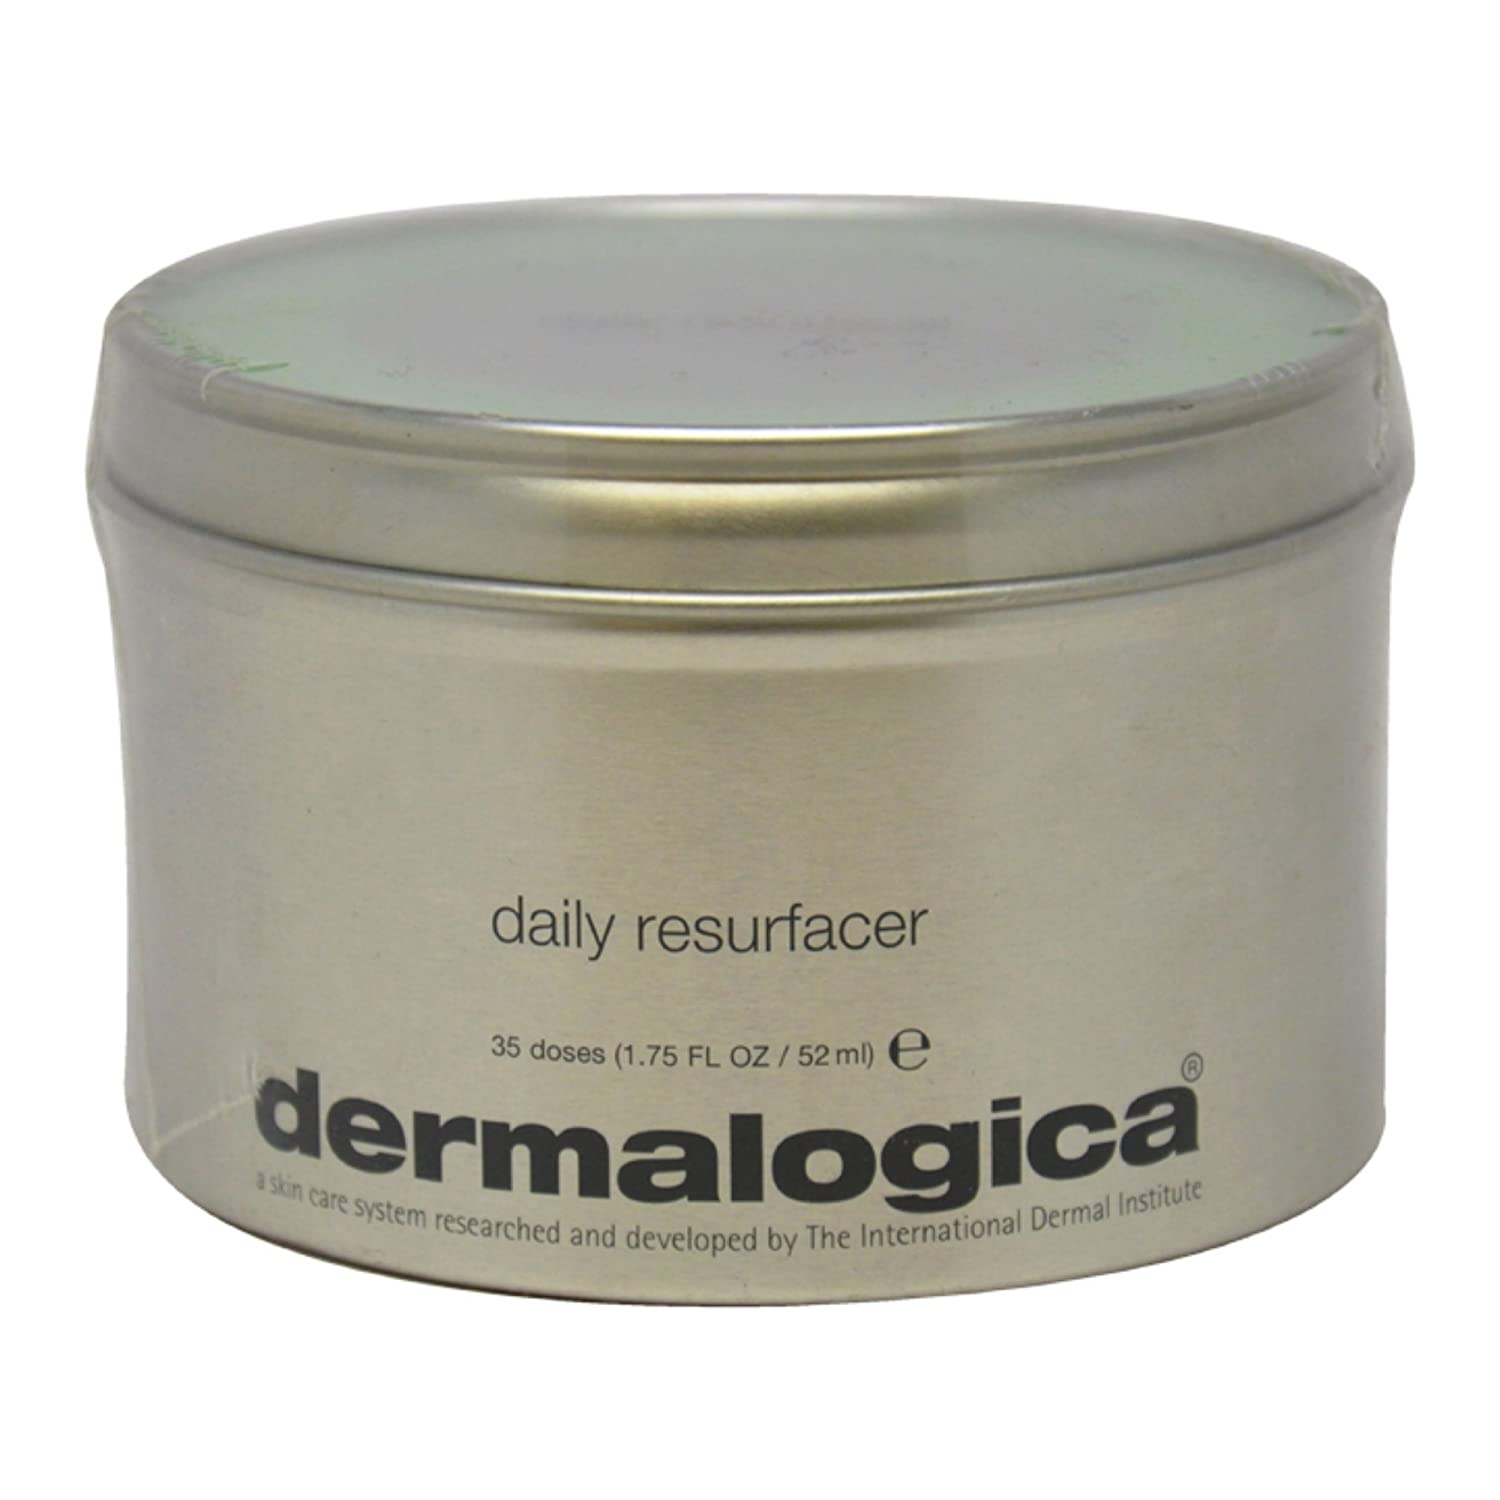 Dermalogica Daily Resurfacer 4 ct 0.05 fl oz Guerlain Sos Serum For Sensitive and Intolerant Skin, 1 Oz